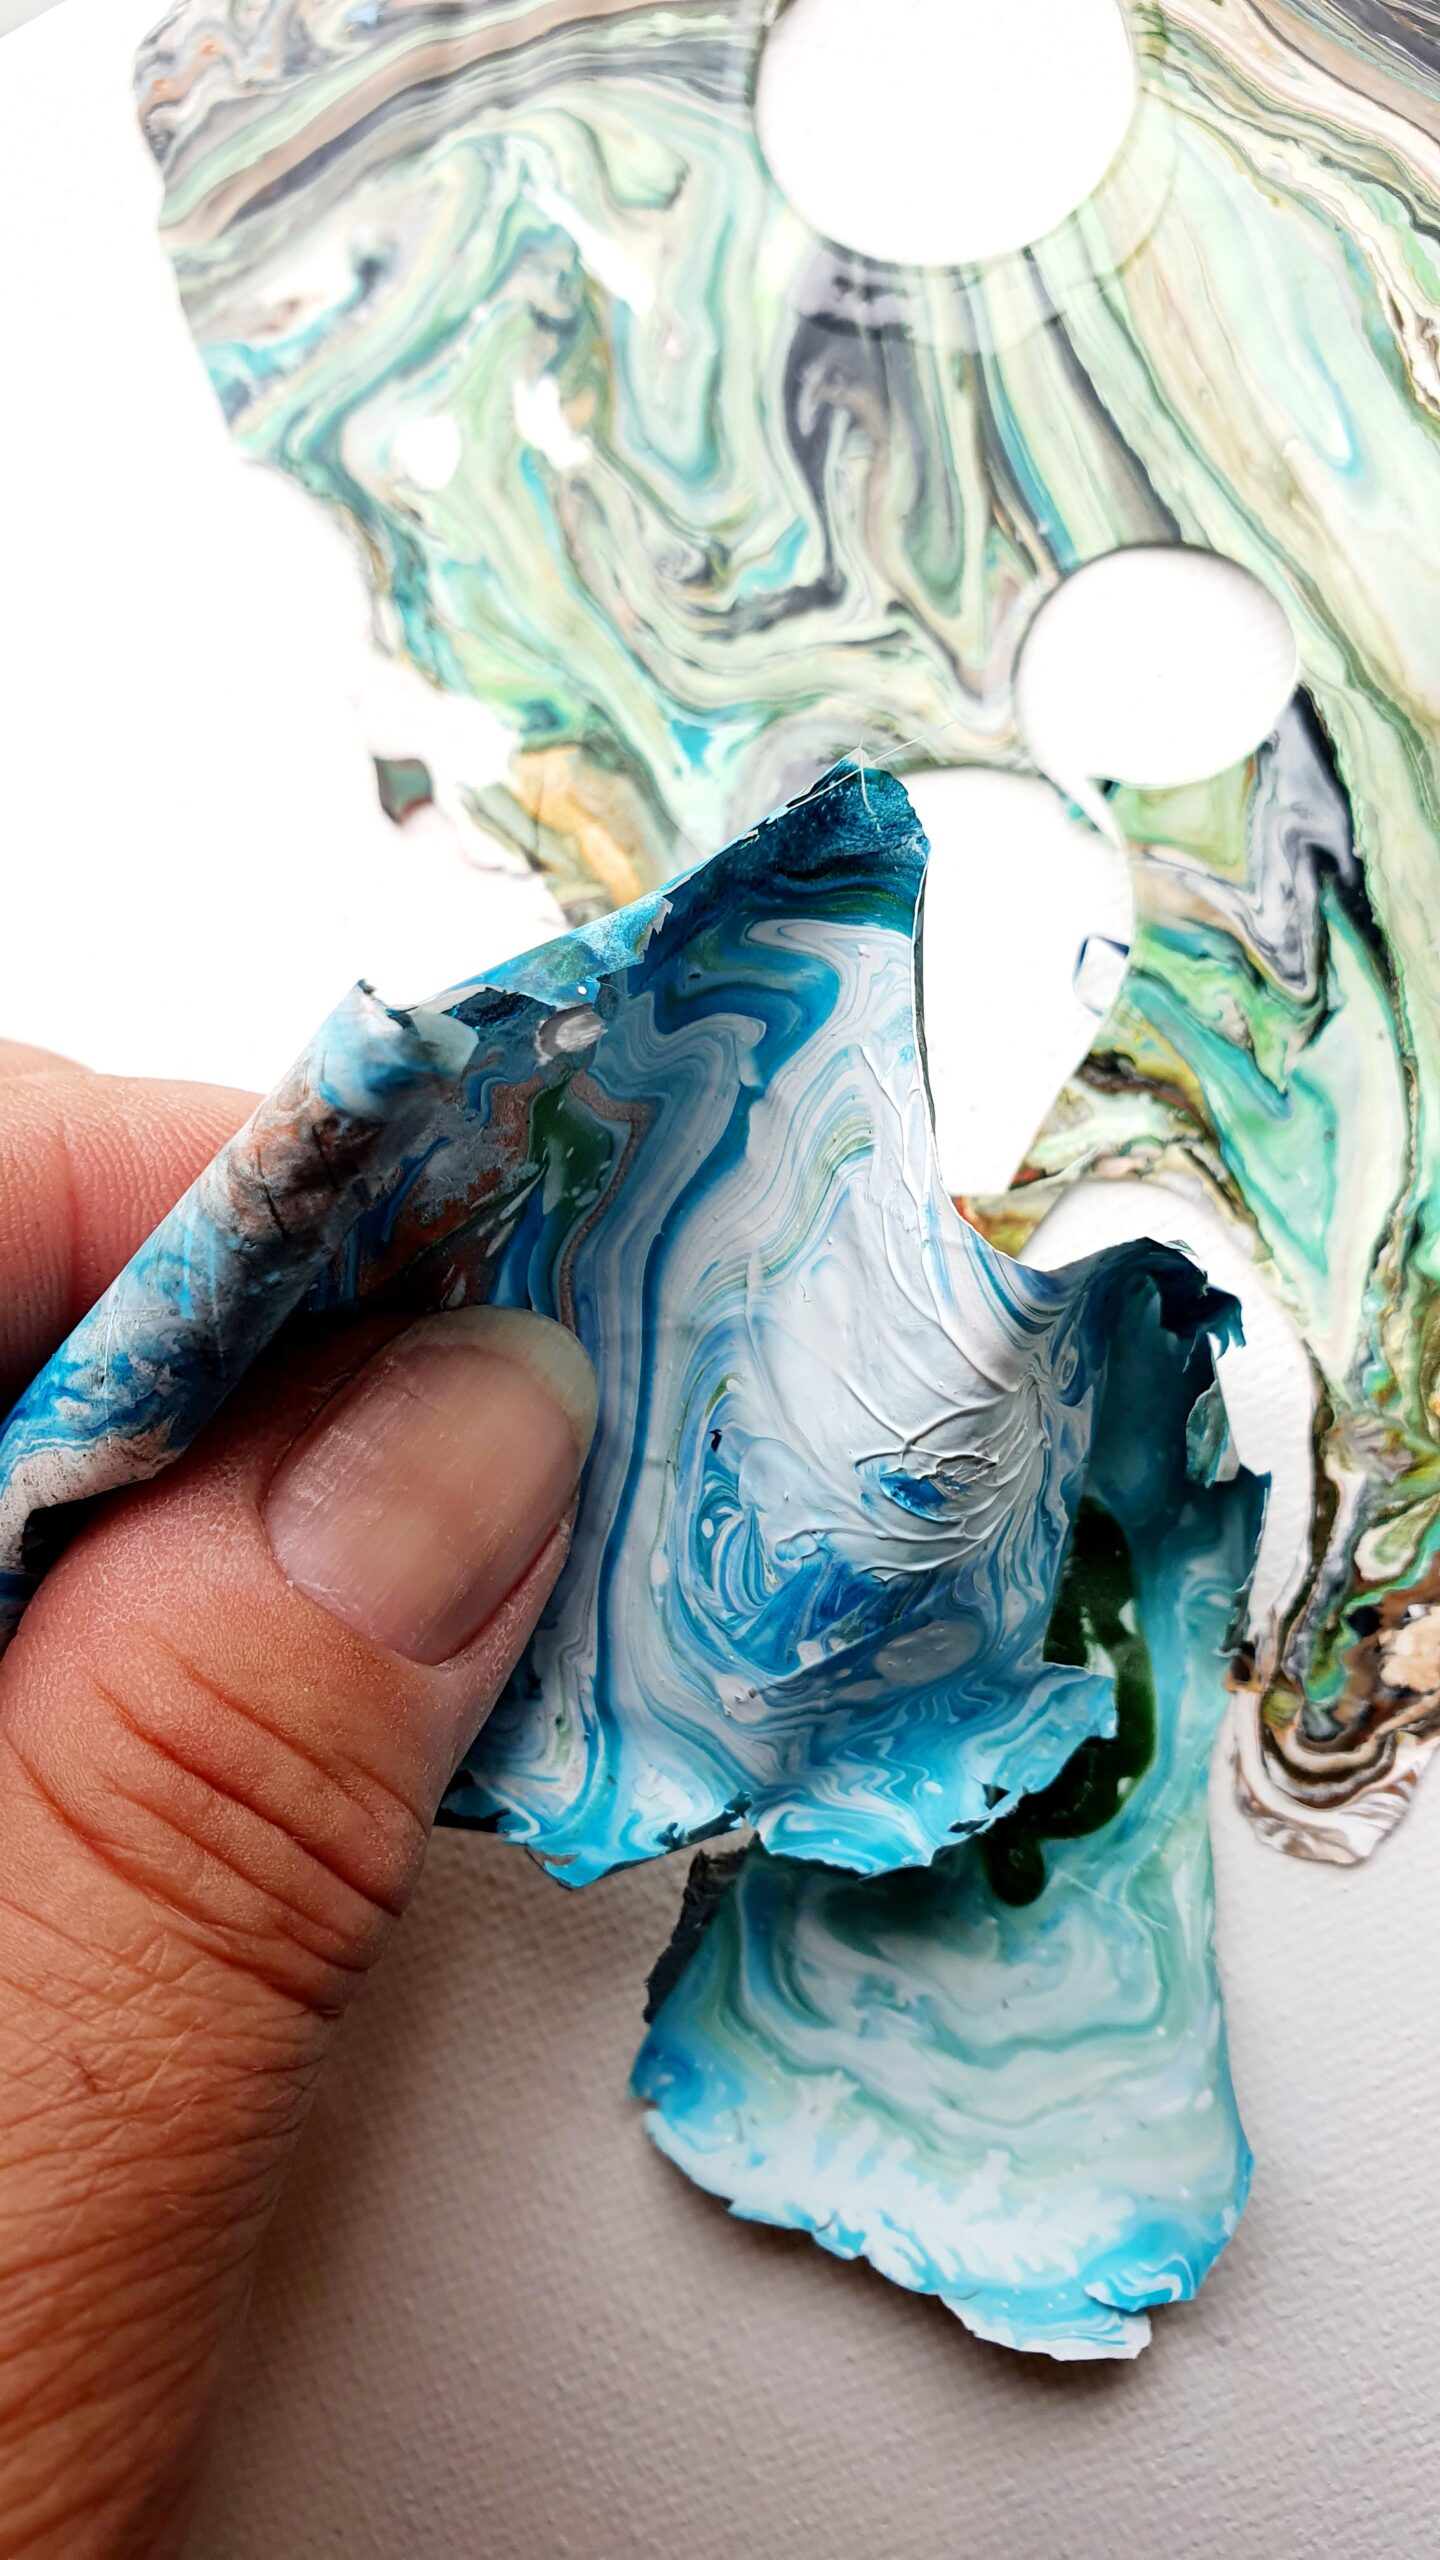 acrylic pouring by Calla Hueppe, Claudie Hamburg, Claudie Hüppe